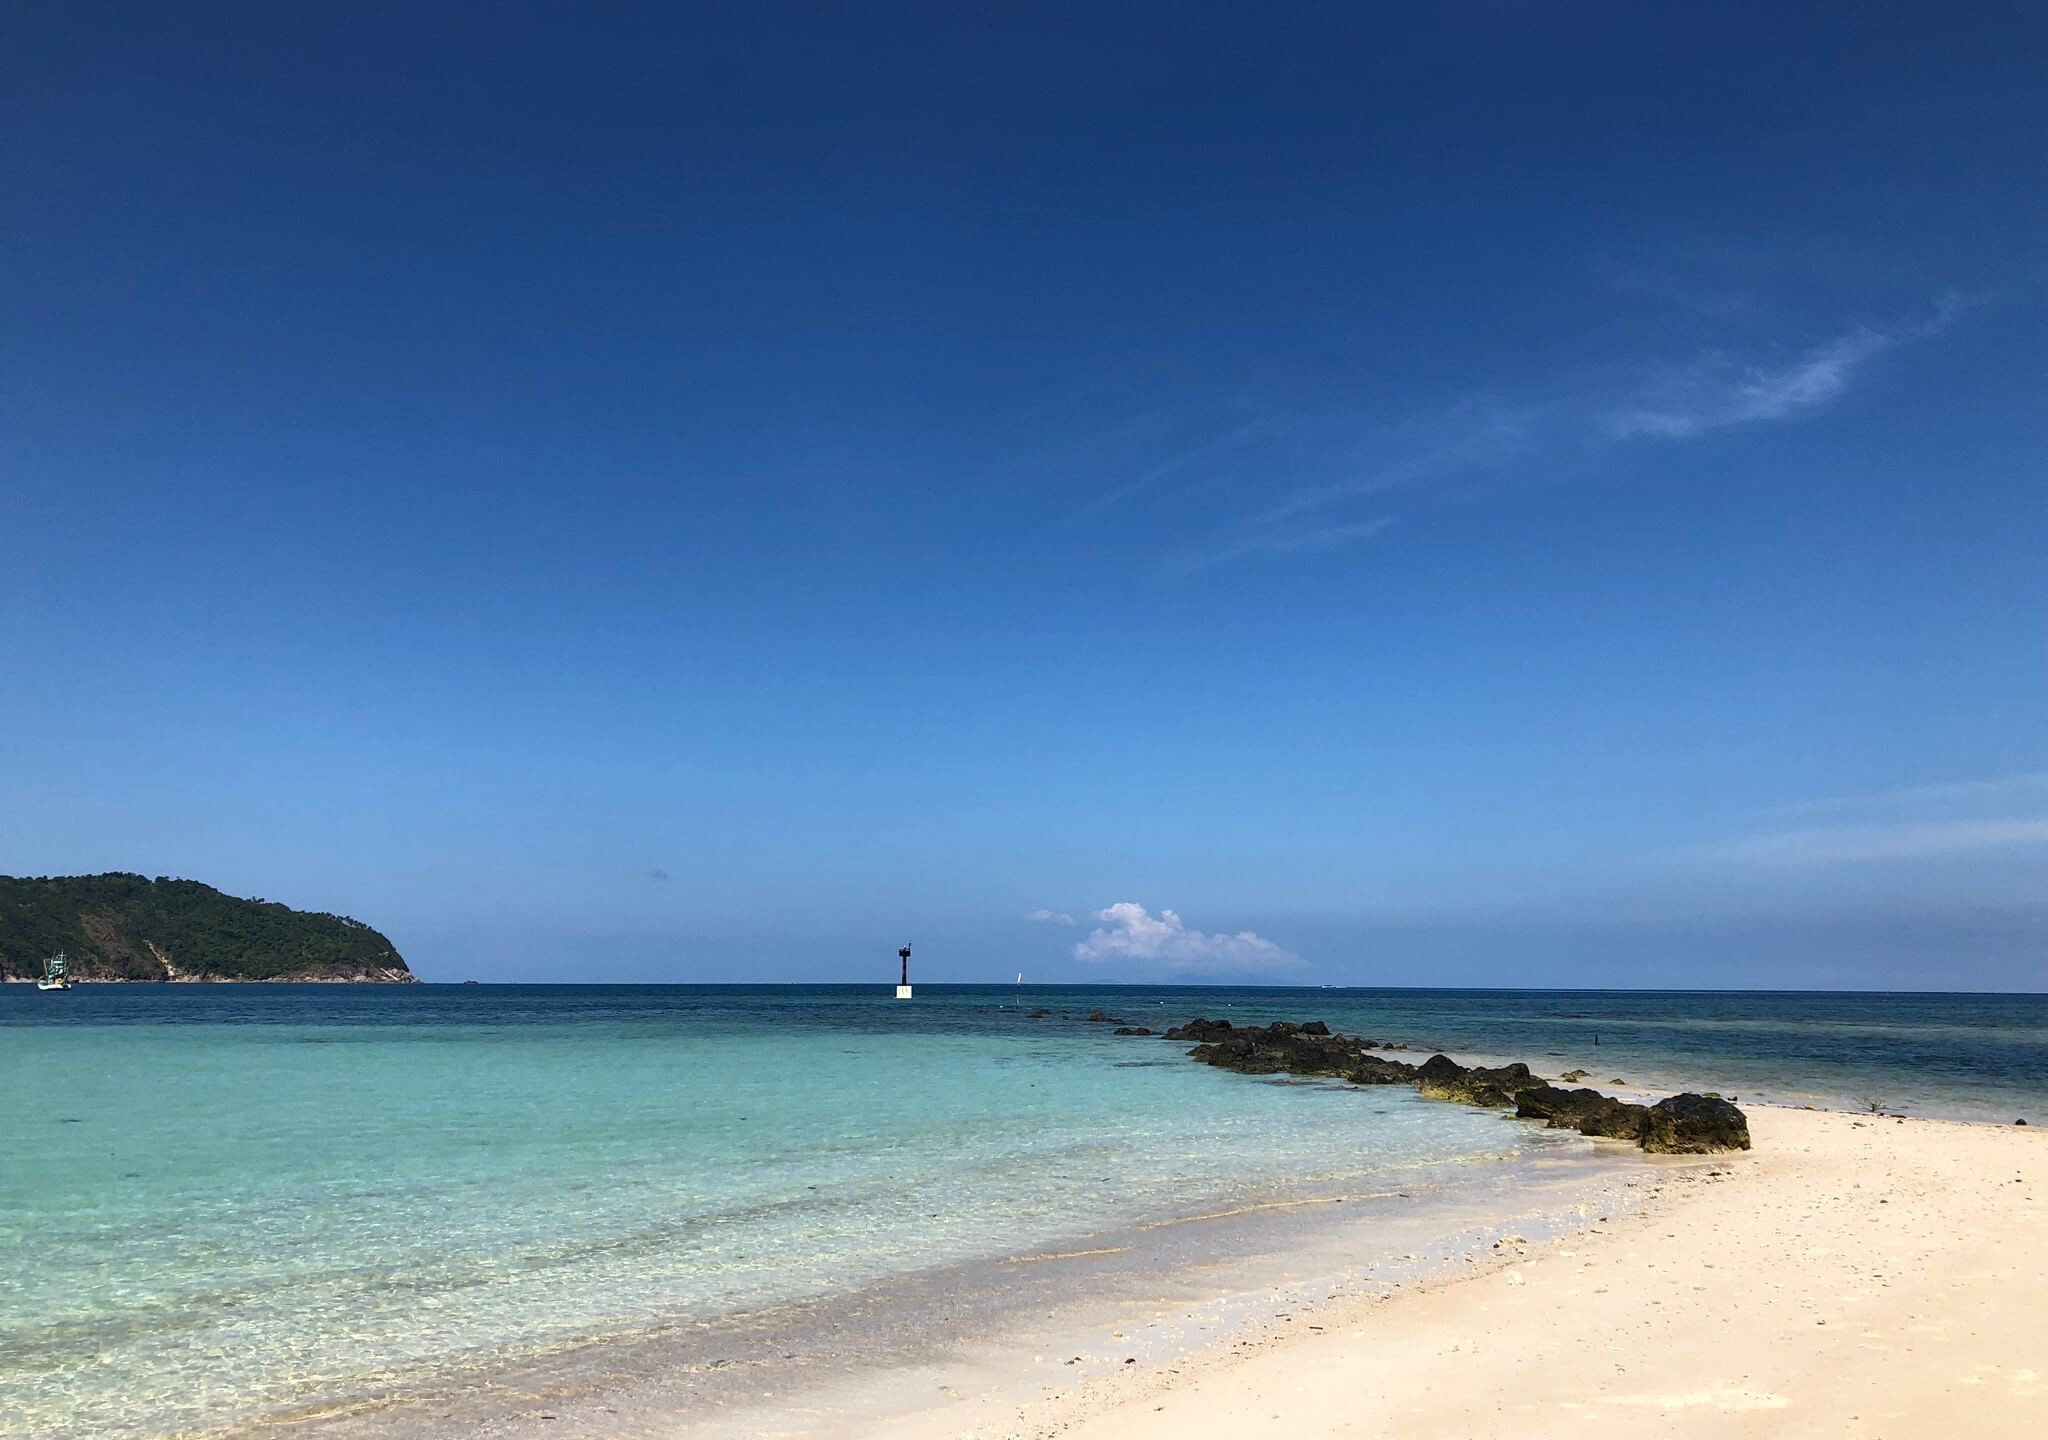 Beautiful beach with white sand and turquoise water